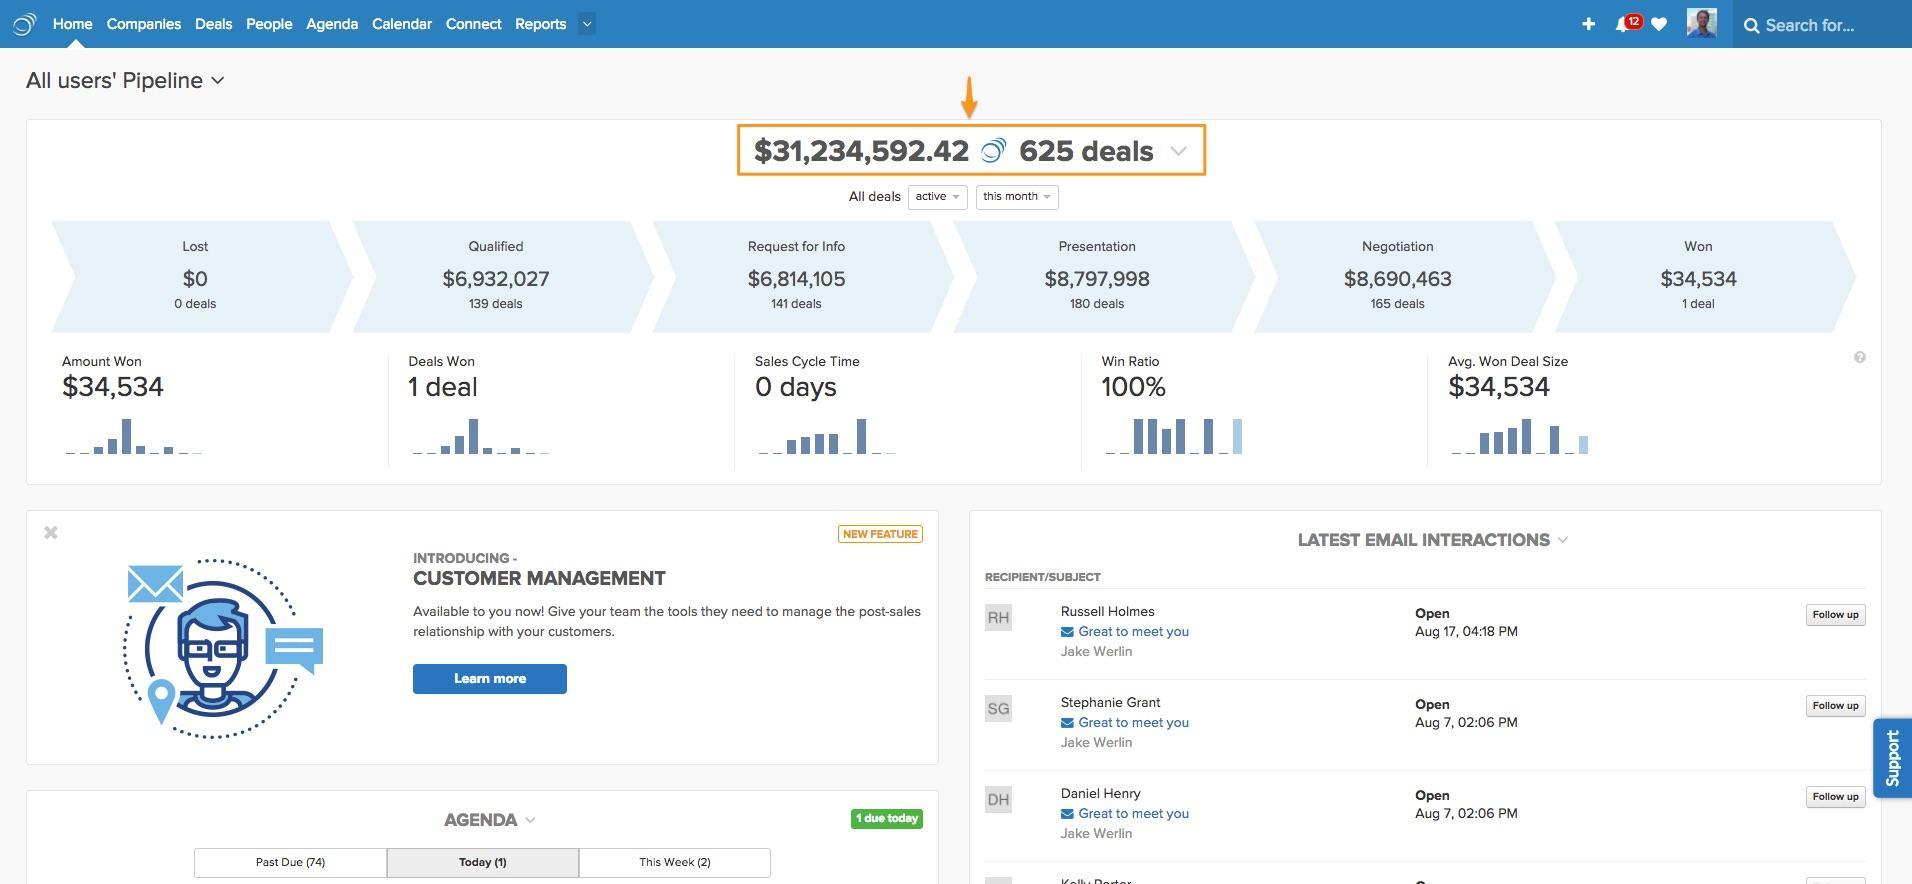 Track your Deal progress and conversion with PipelineDeals